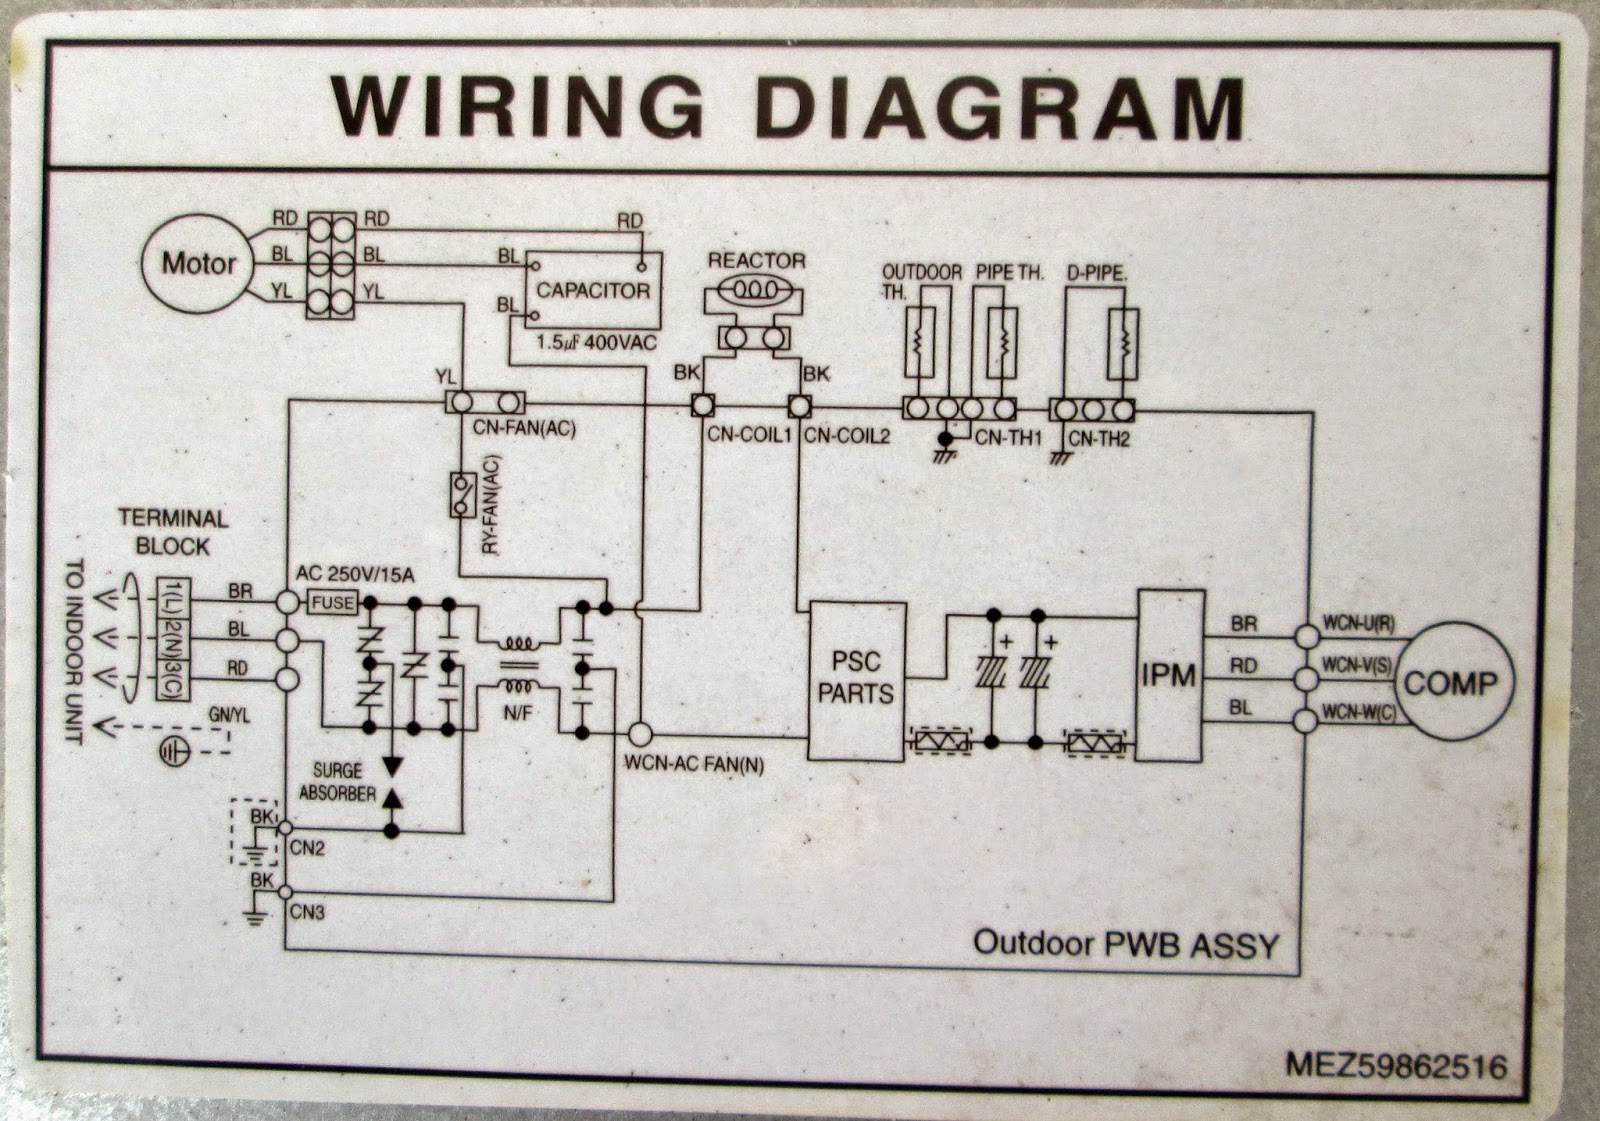 medium resolution of split ac unit wiring diagram wiring diagram show wiring diagram of a split air conditioner single